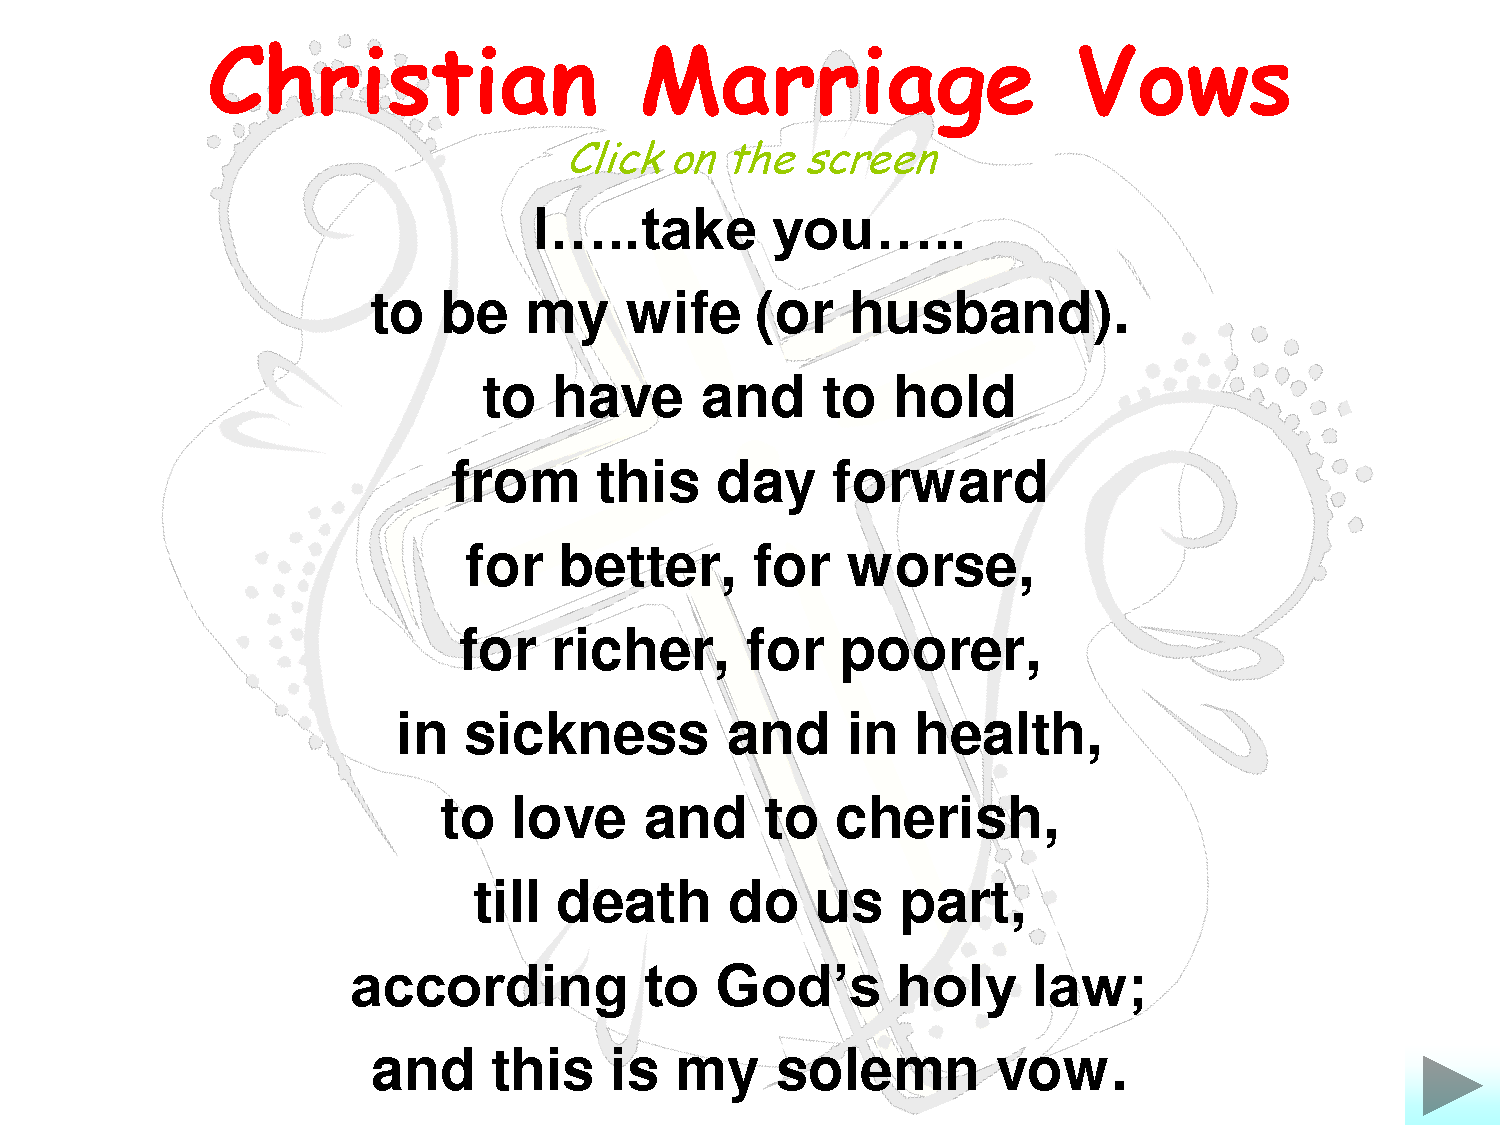 Marriage Vows | Christ | Best wedding vows, Christian wedding vows